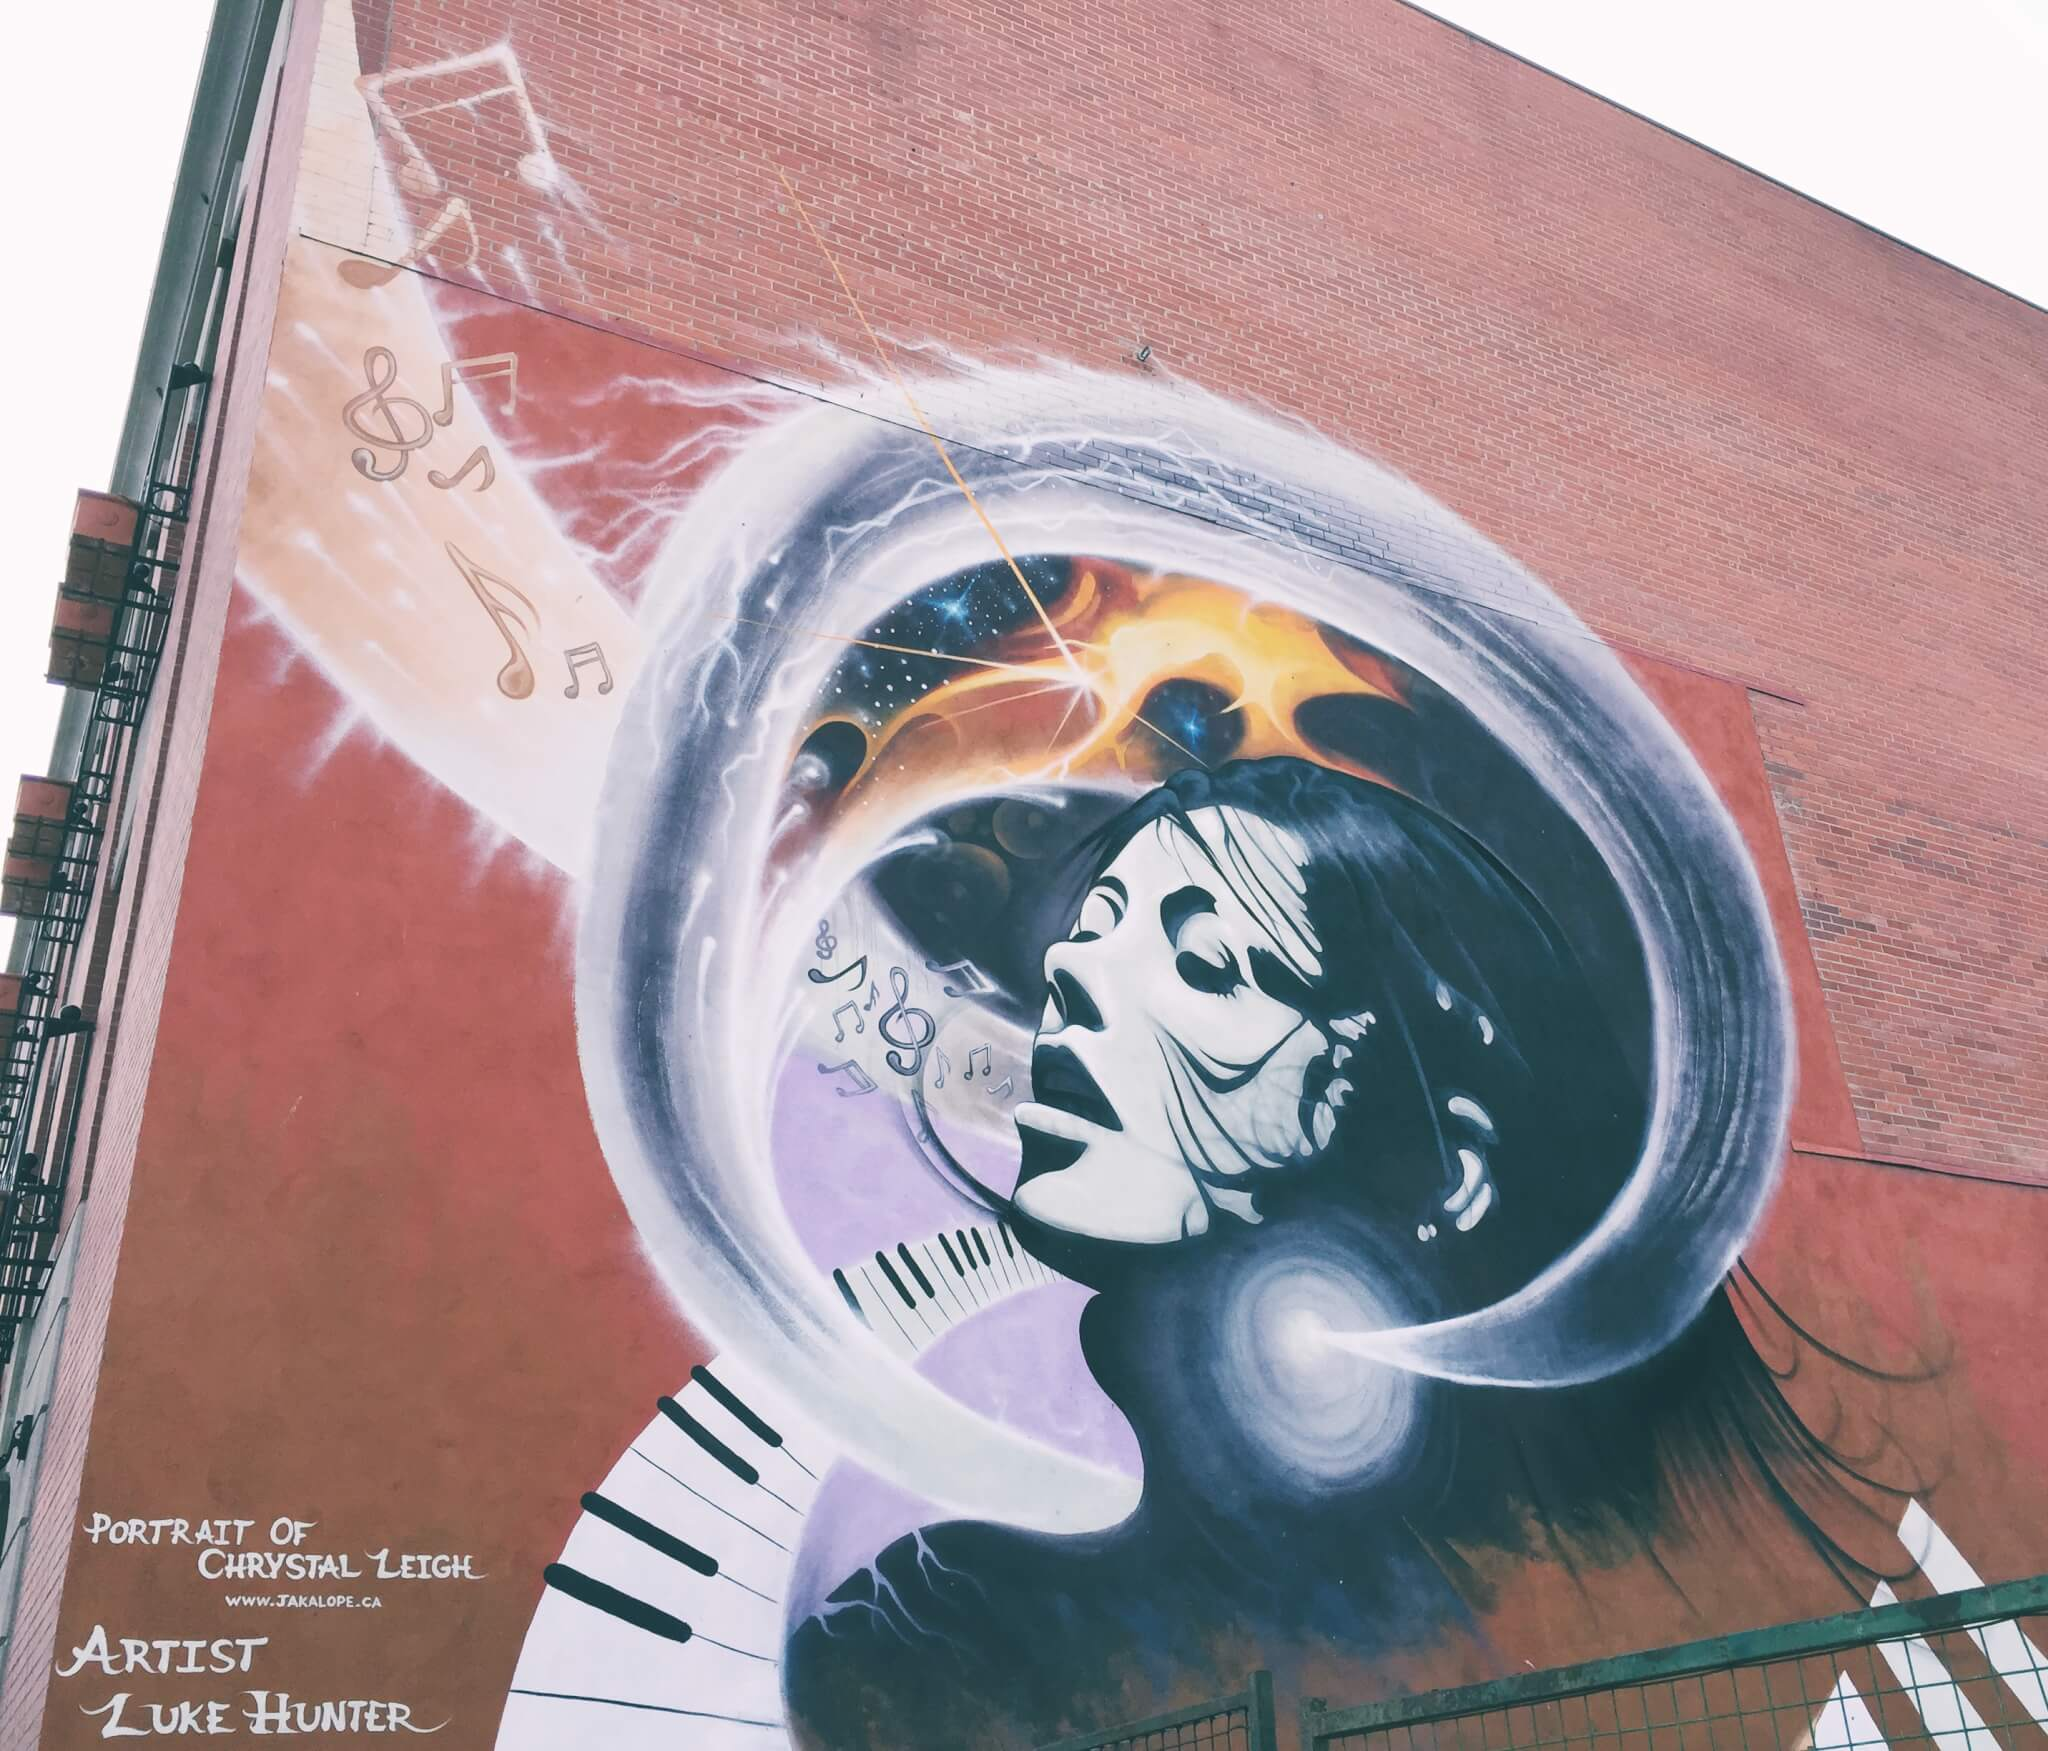 Urban Art in British Columbia: A Colorful City Guide to Penticton